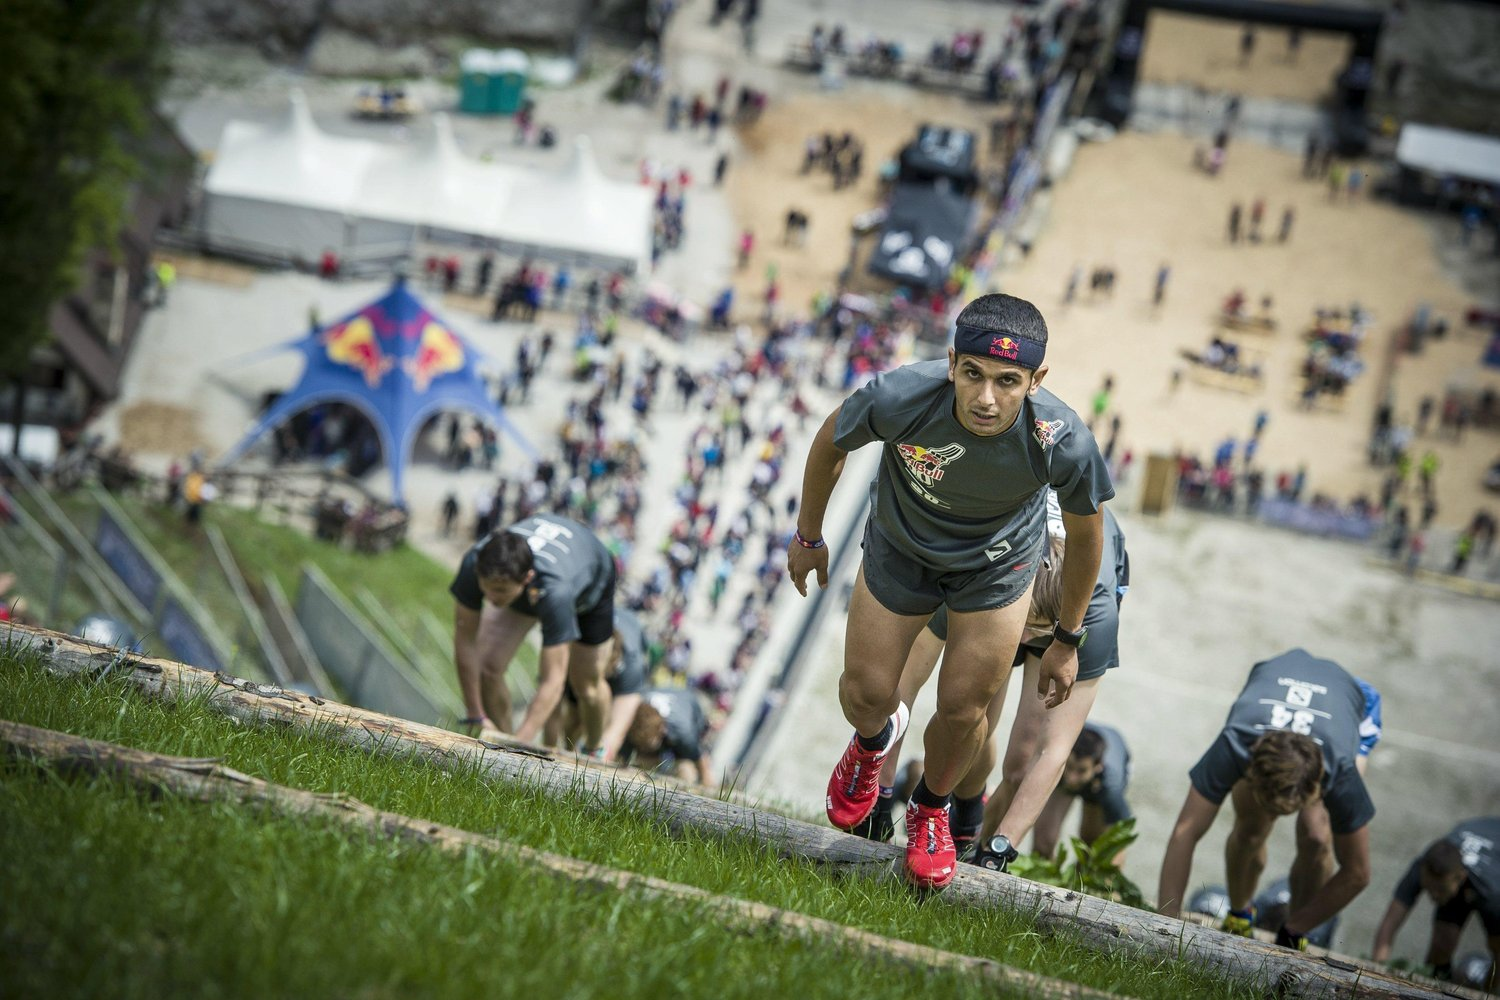 Red Bull 400m + Vertical Hill Run + Challenge